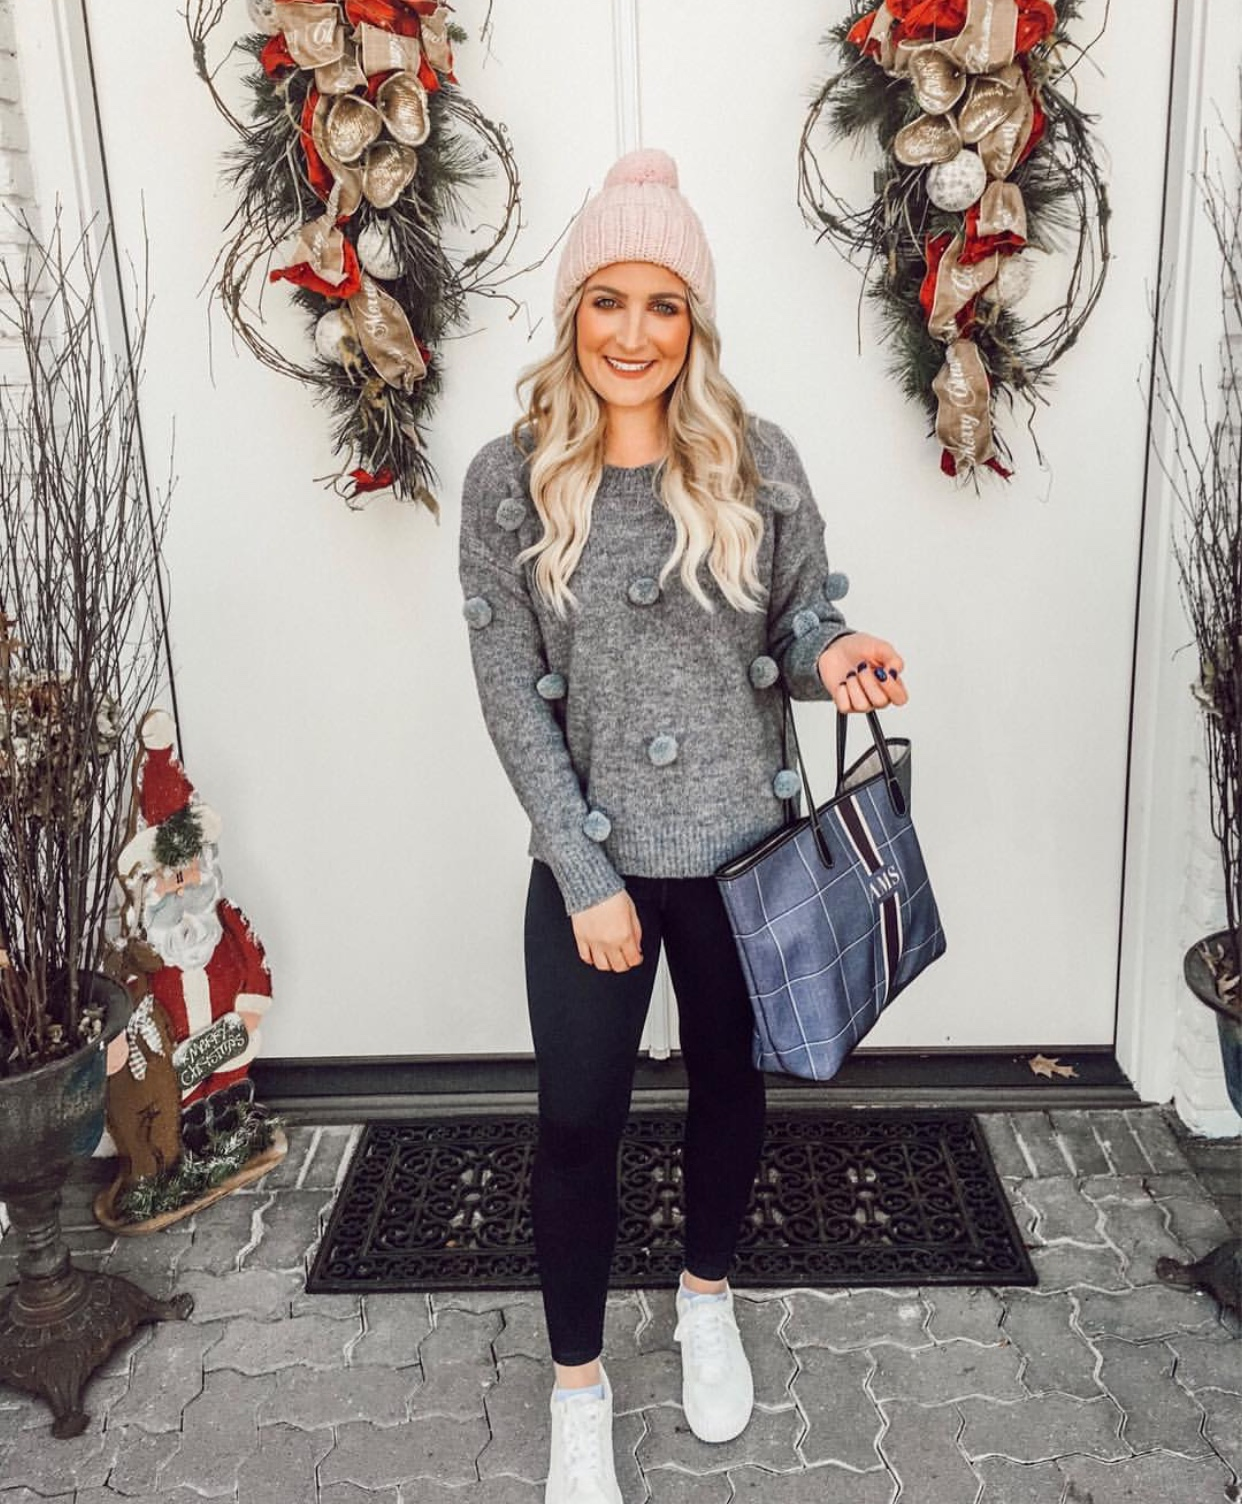 boohoo pom pom sweater | Winter Fashion | Audrey Madison Stowe a fashion and lifestyle blogger